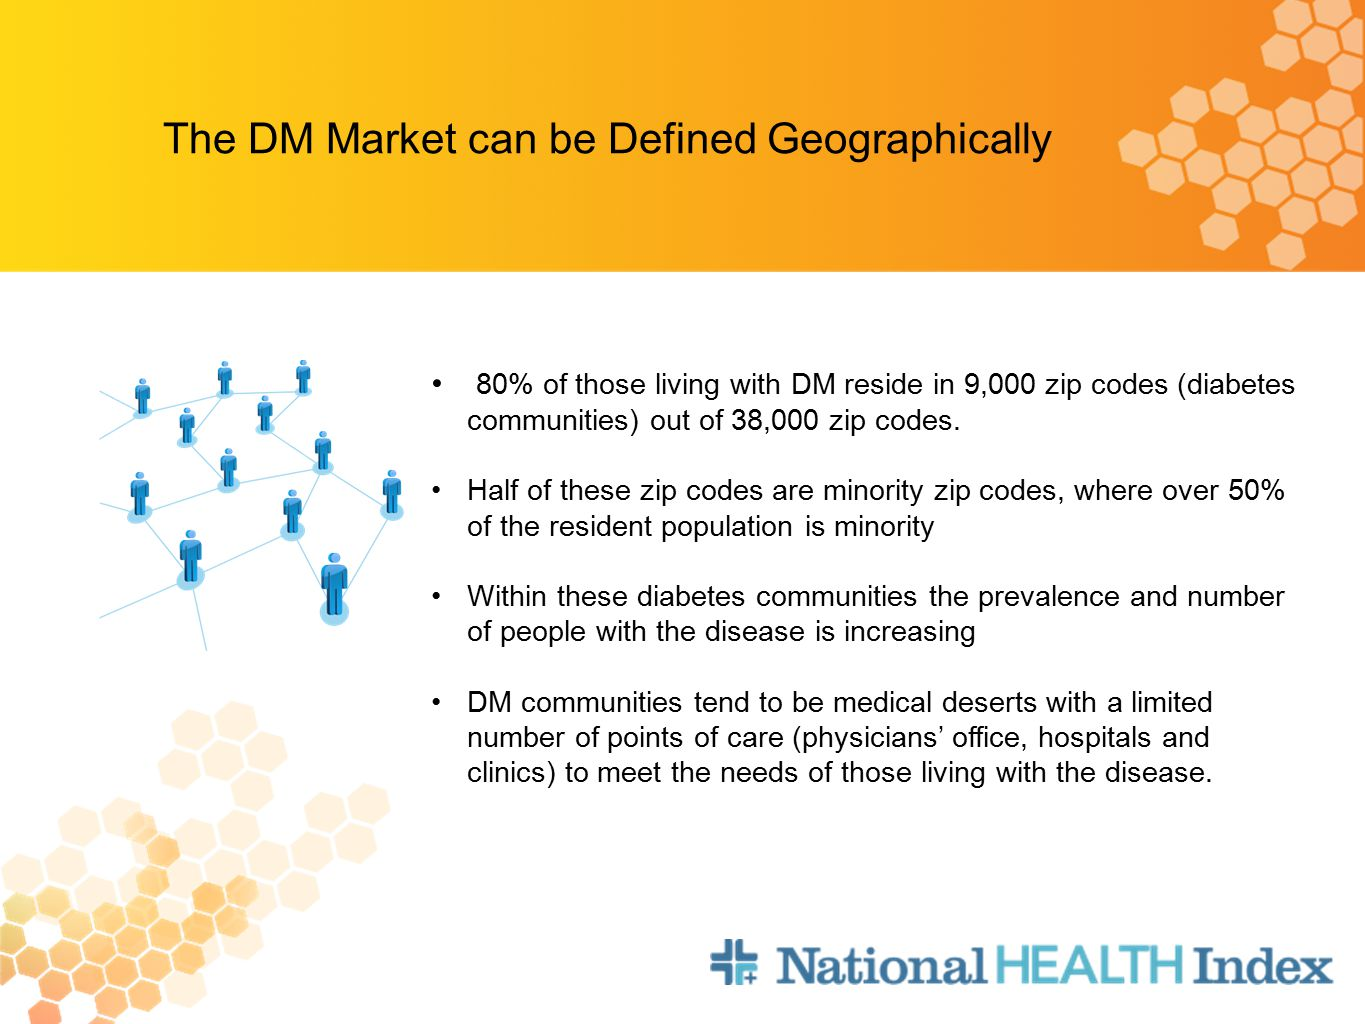 The DM Market can be Defined Geographically 80% of those living with DM reside in 9,000 zip codes (diabetes communities) out of 38,000 zip codes.